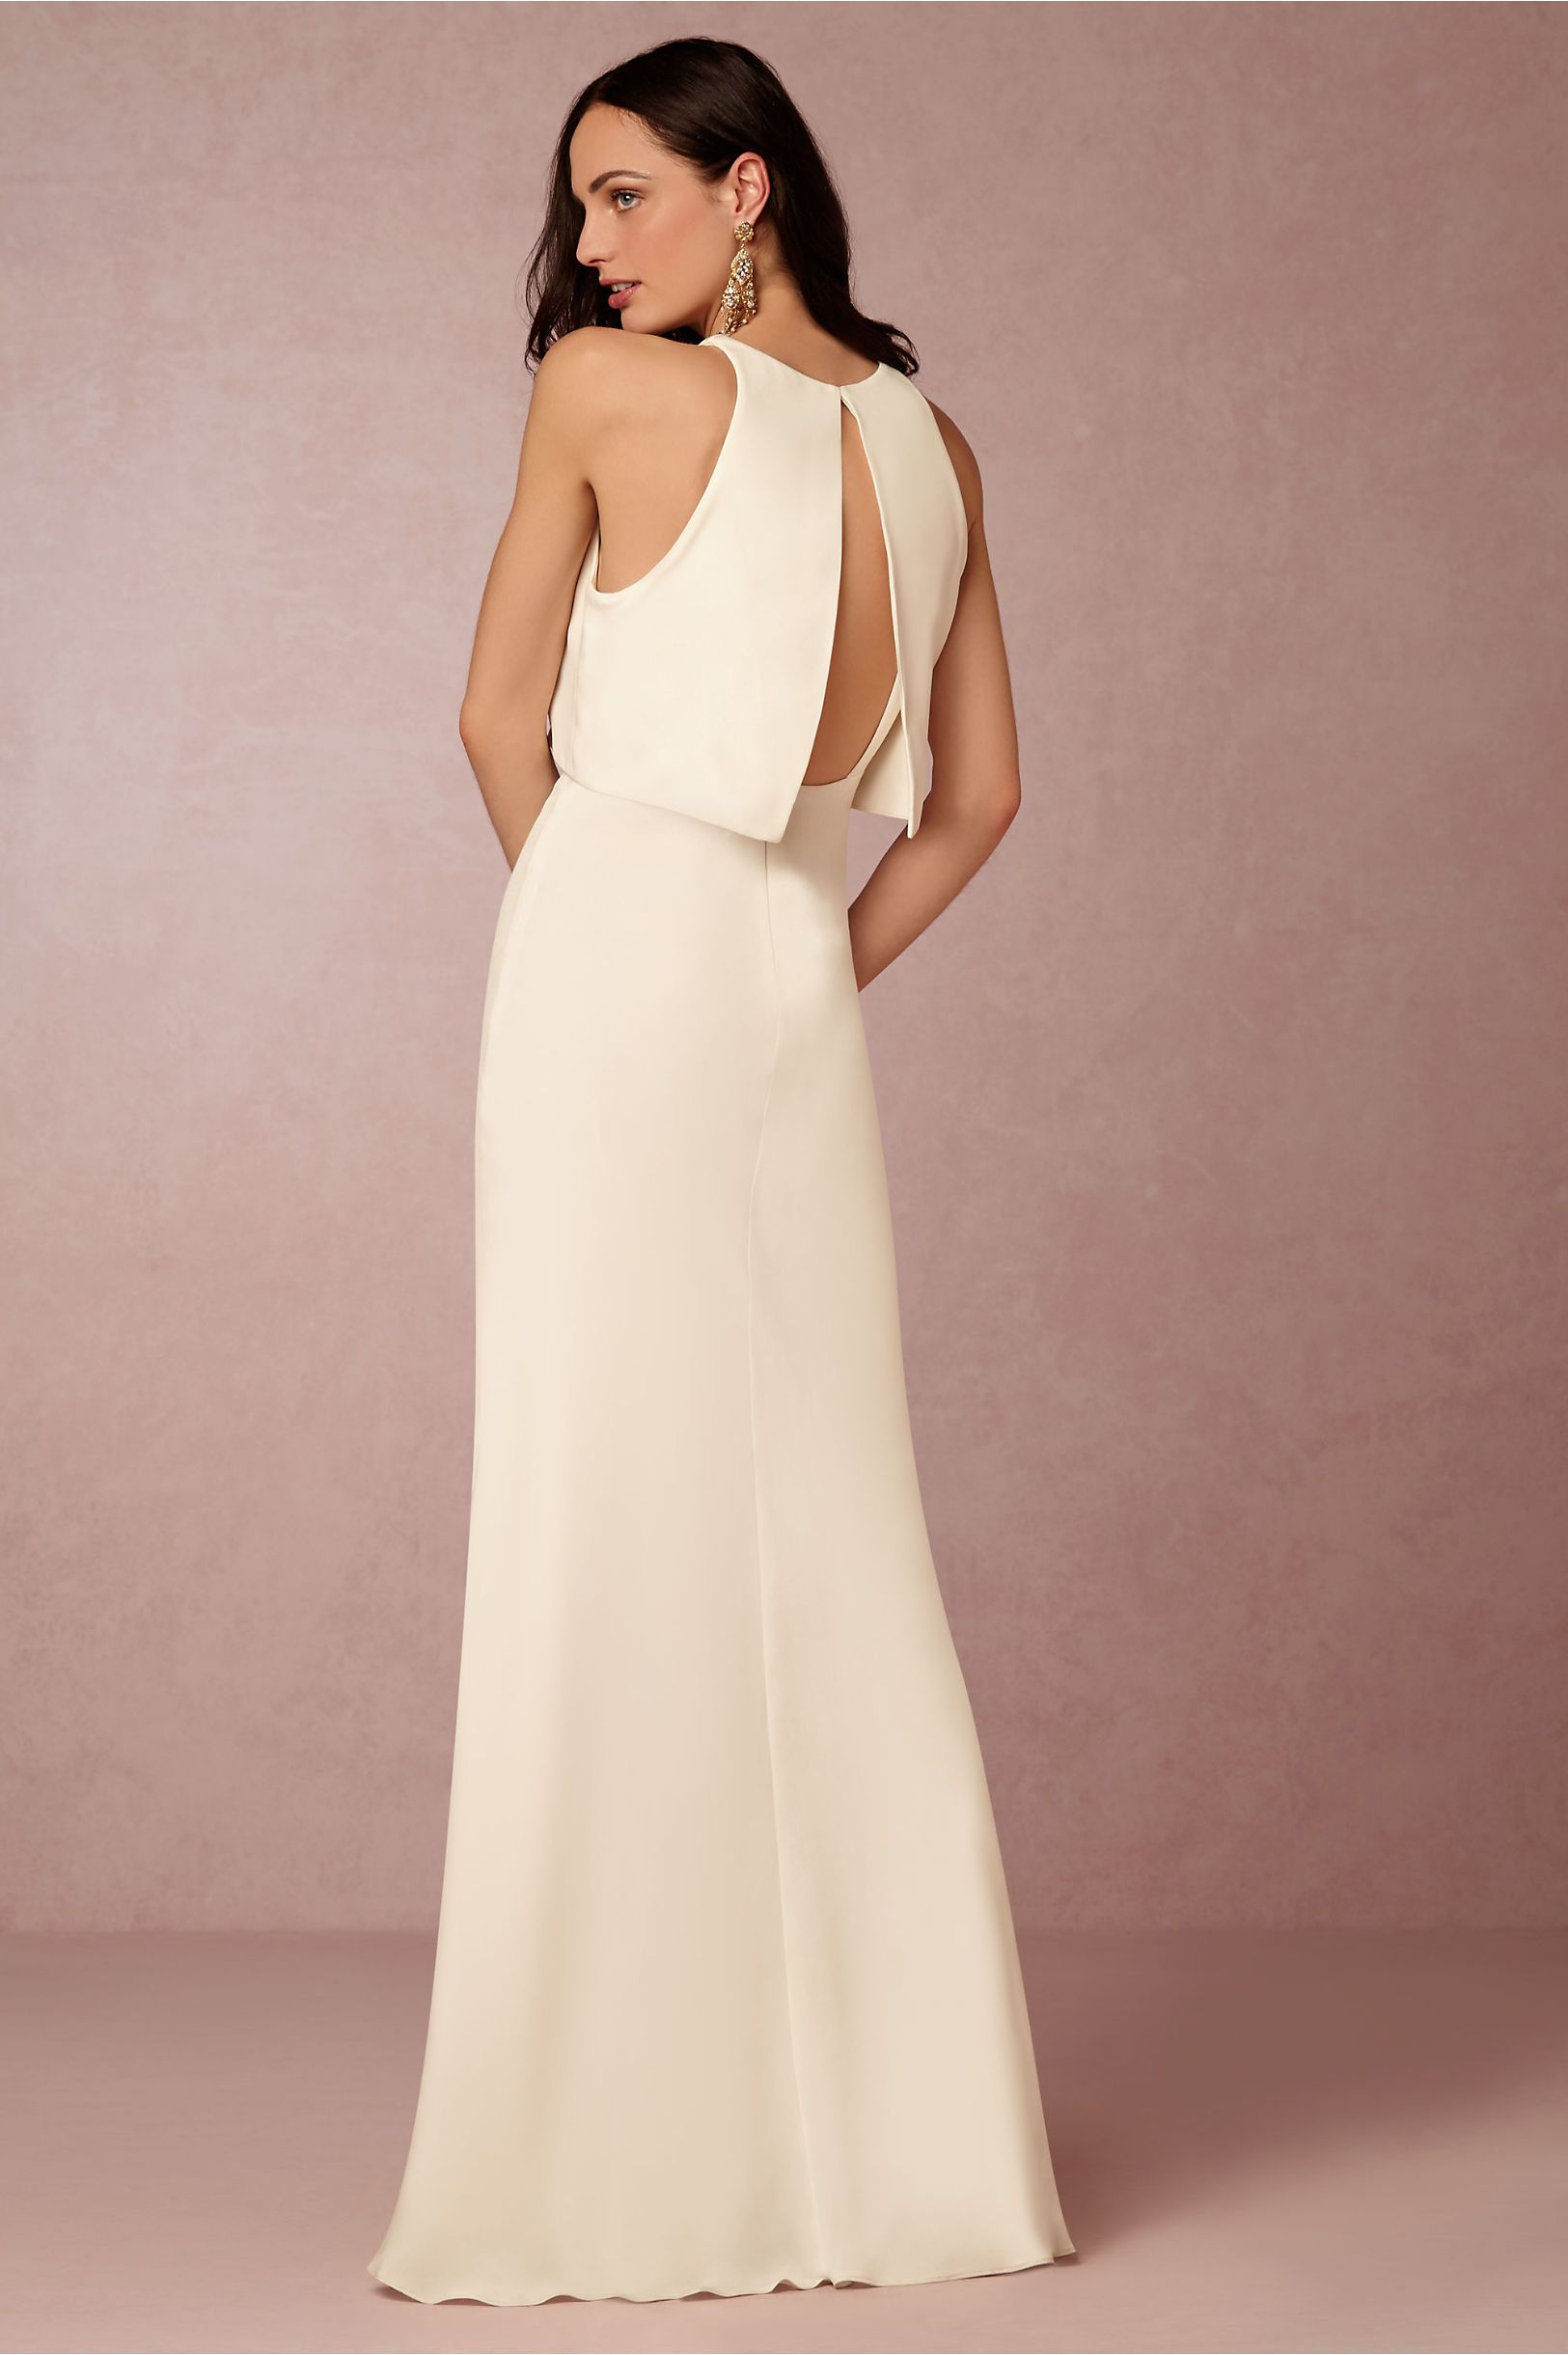 modern courthouse wedding dress style | Iva Crepe Maxi from BHLDN ...